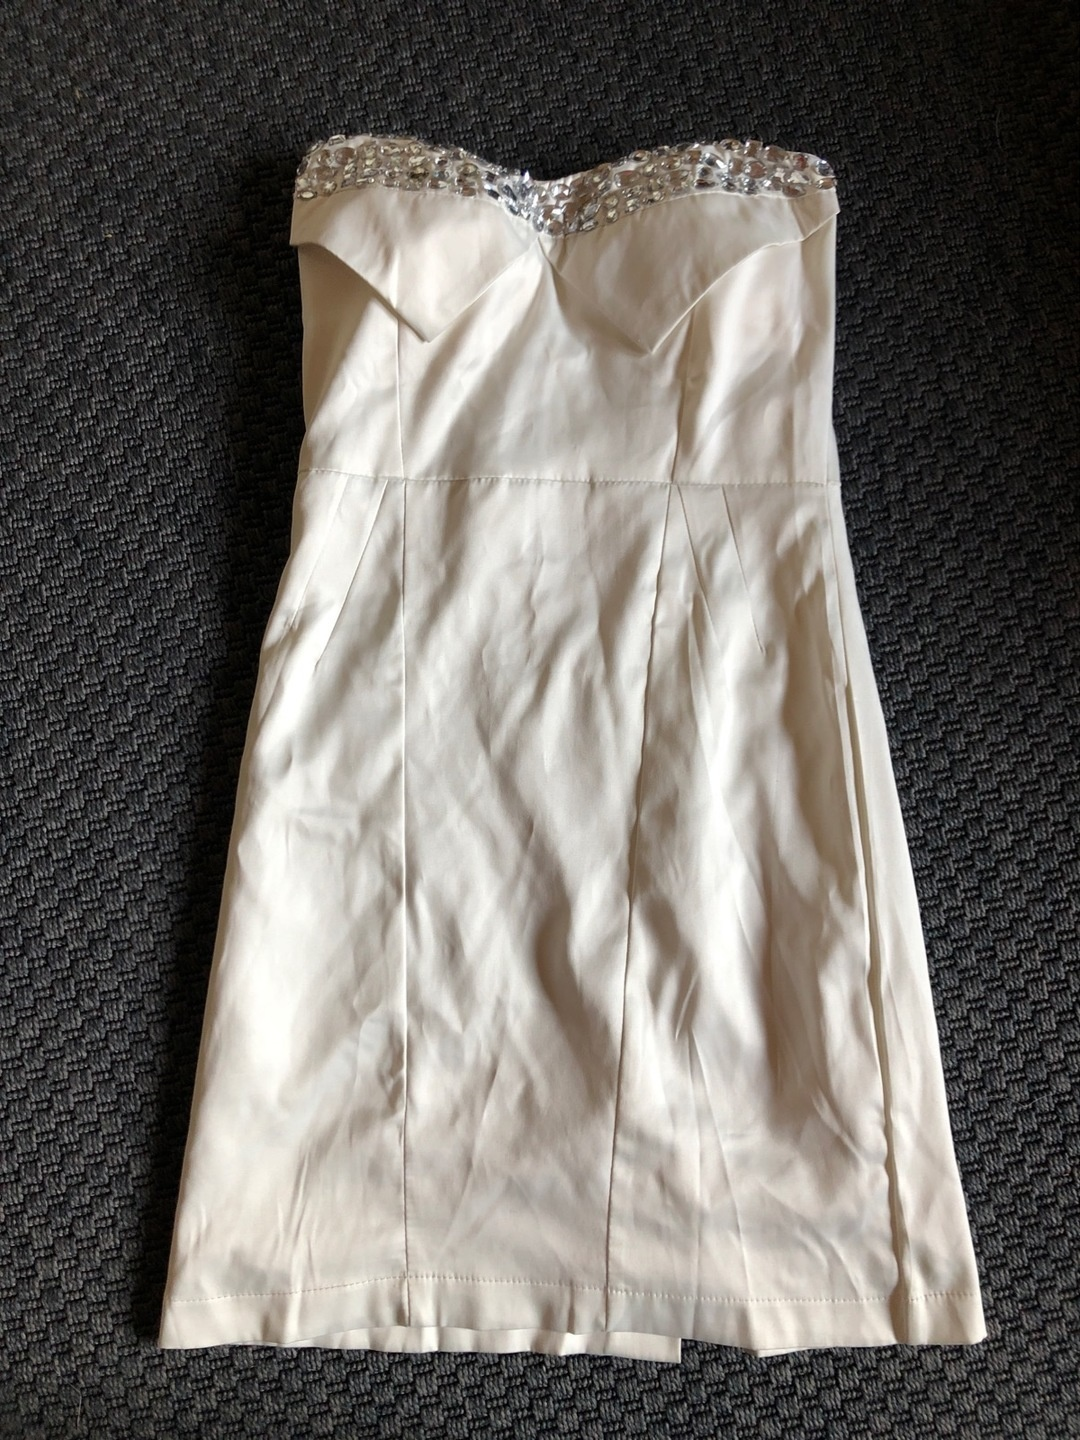 Women's dresses - R.JSTORY photo 1